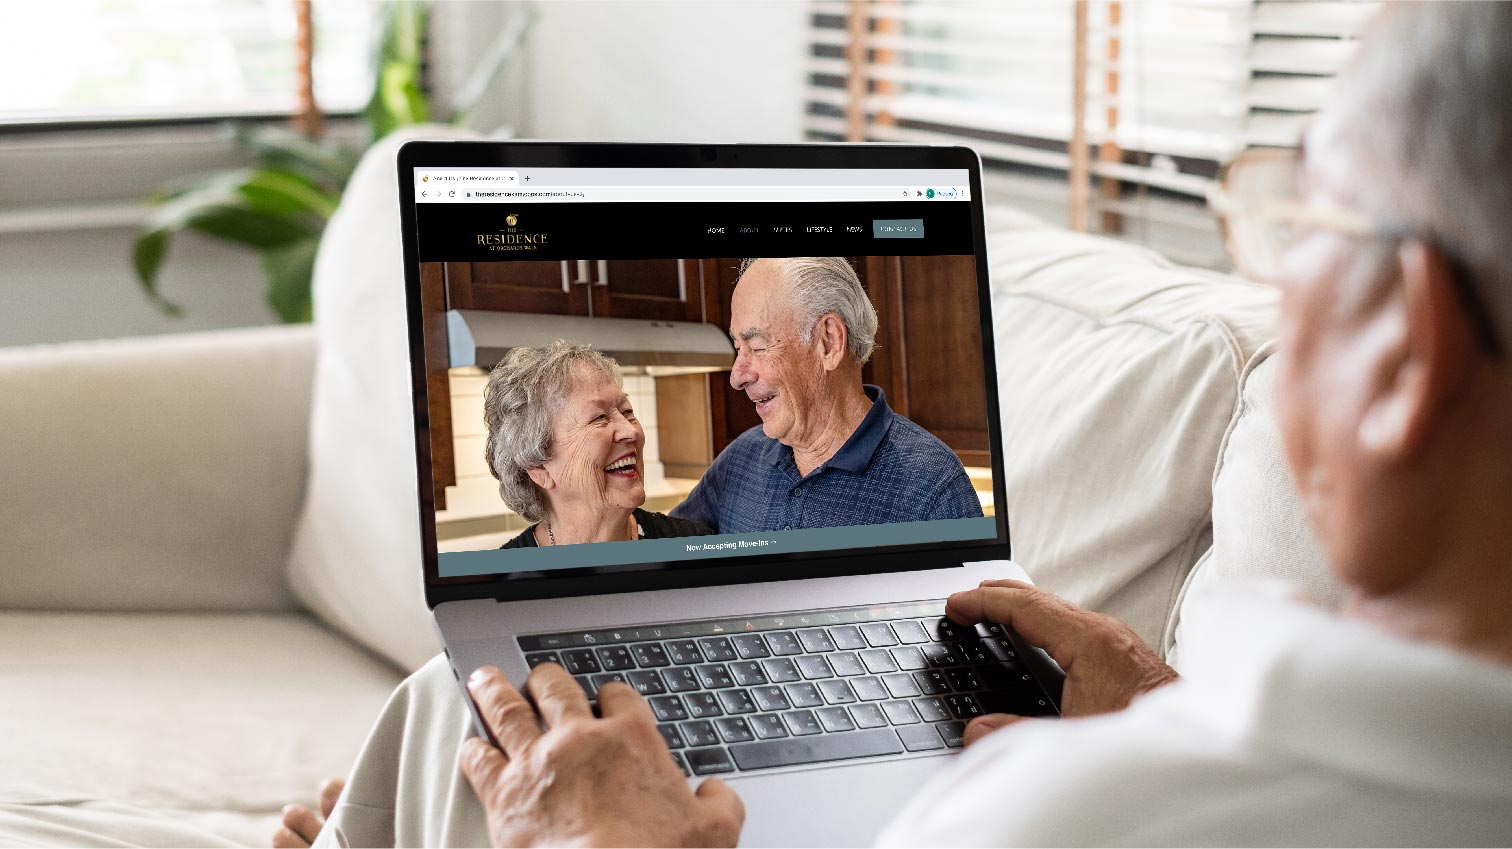 An elderly man visiting The Residence at Orchards Walk website on a laptop - White Canvas Design